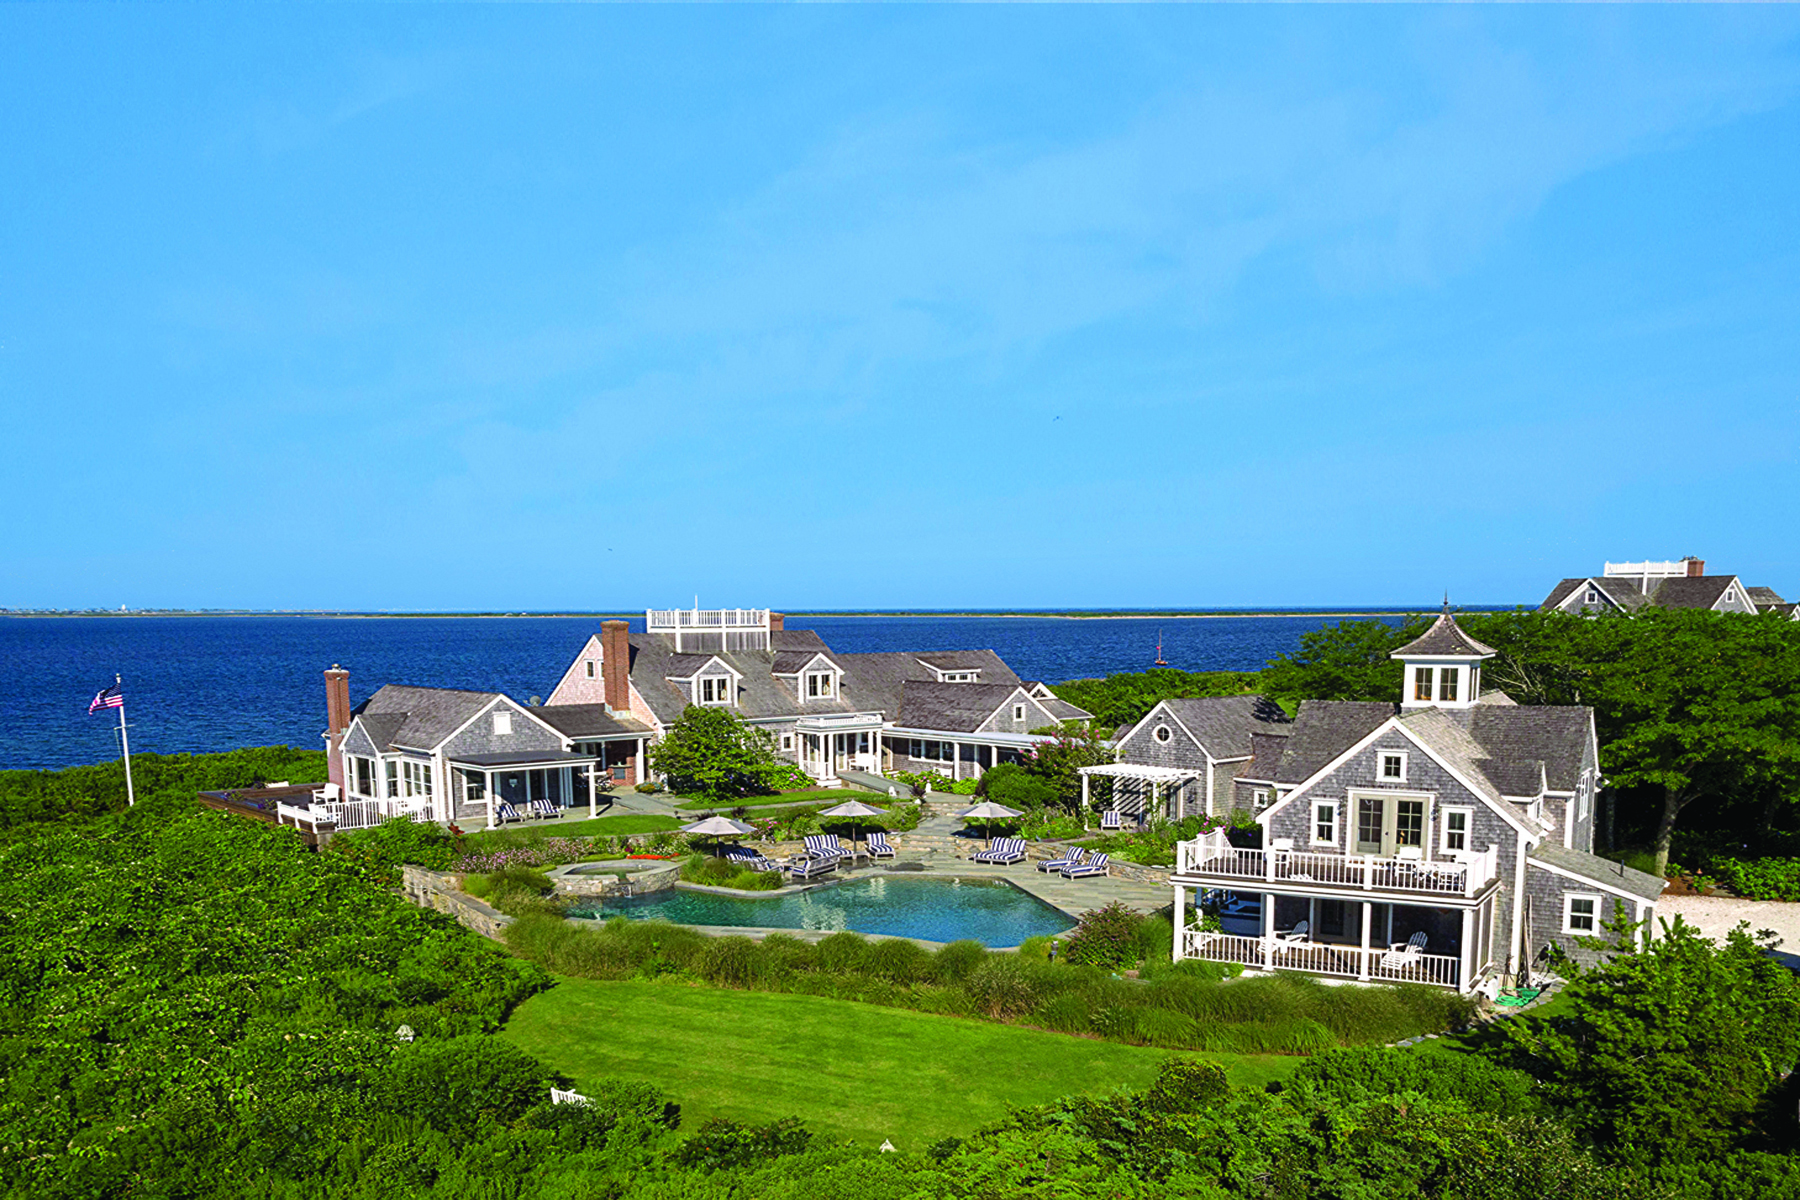 Single Family Home for Sale at Entirely Unique Waterfront Estate 72 Pocomo Road 76 and 78 Pocomo Road Nantucket, Massachusetts, 02554 United States